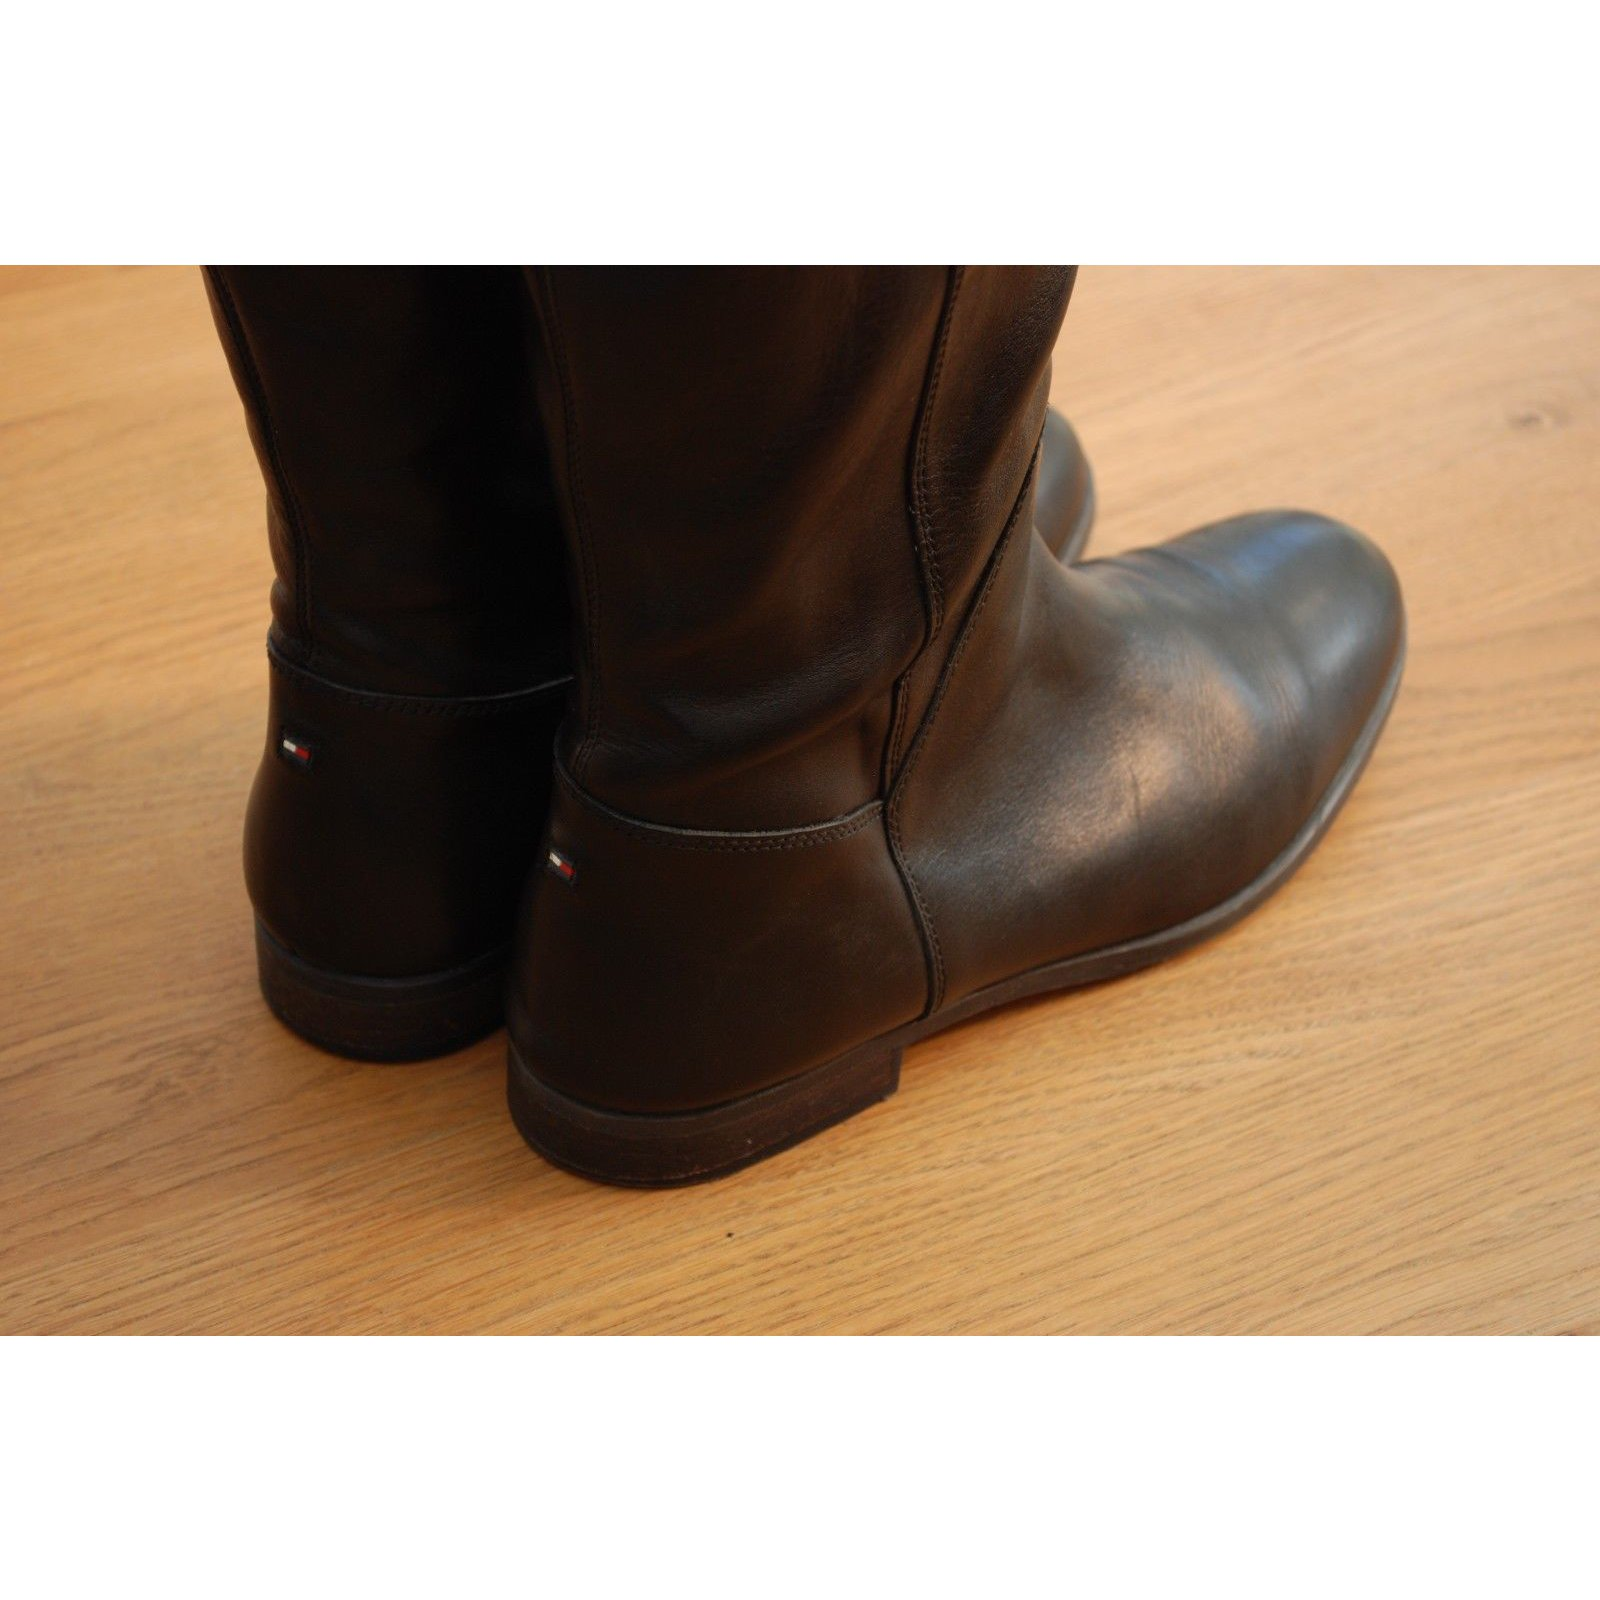 7ae33fa4605a8 Tommy Hilfiger Boots Boots Leather Black ref.62827 - Joli Closet